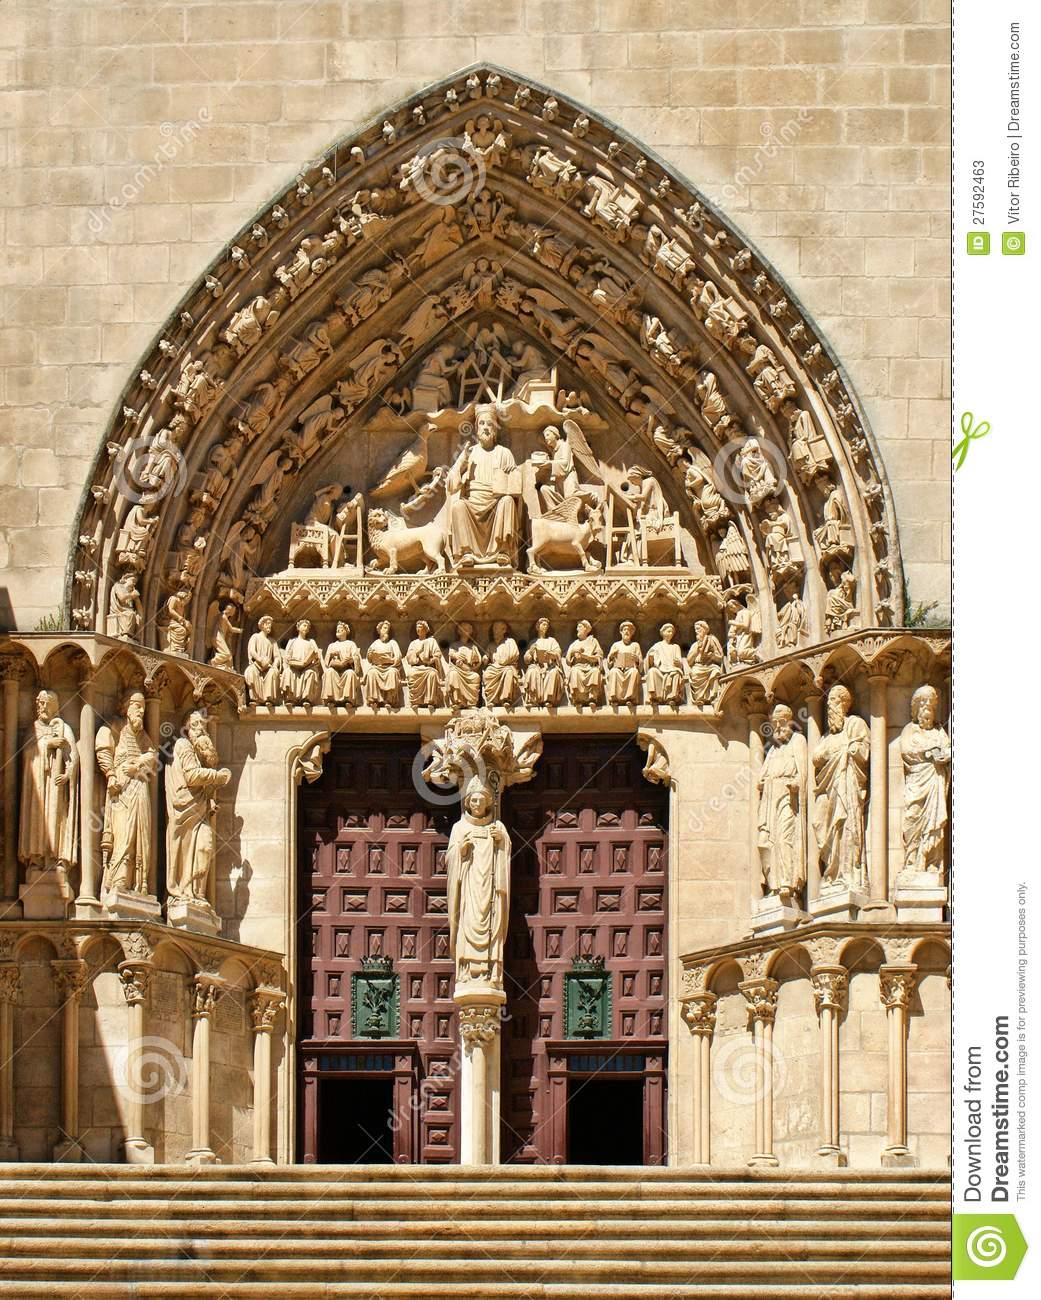 The Sarmental Door of Burgos Cathedral